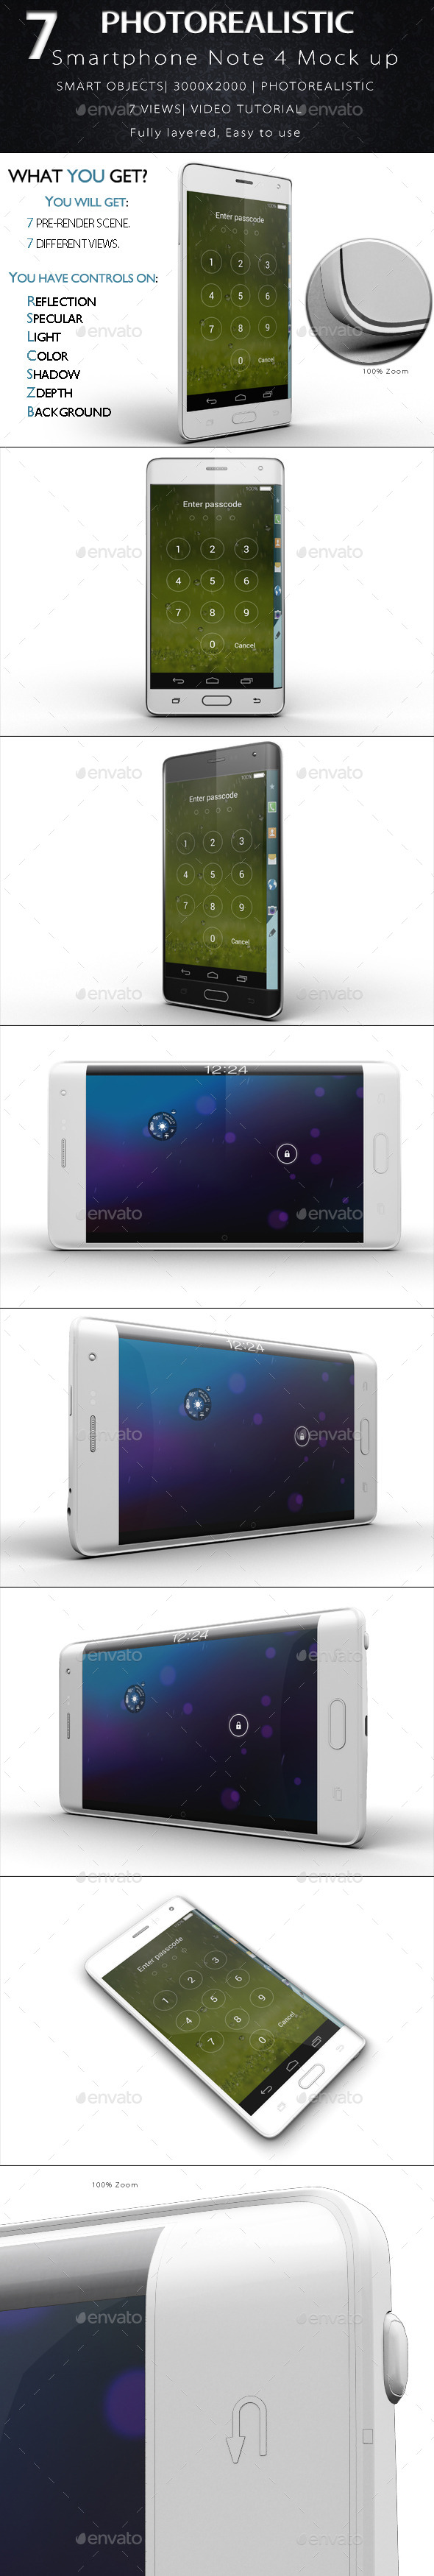 GraphicRiver Galaxy Note Edge Smartphone Mock Up 11893846